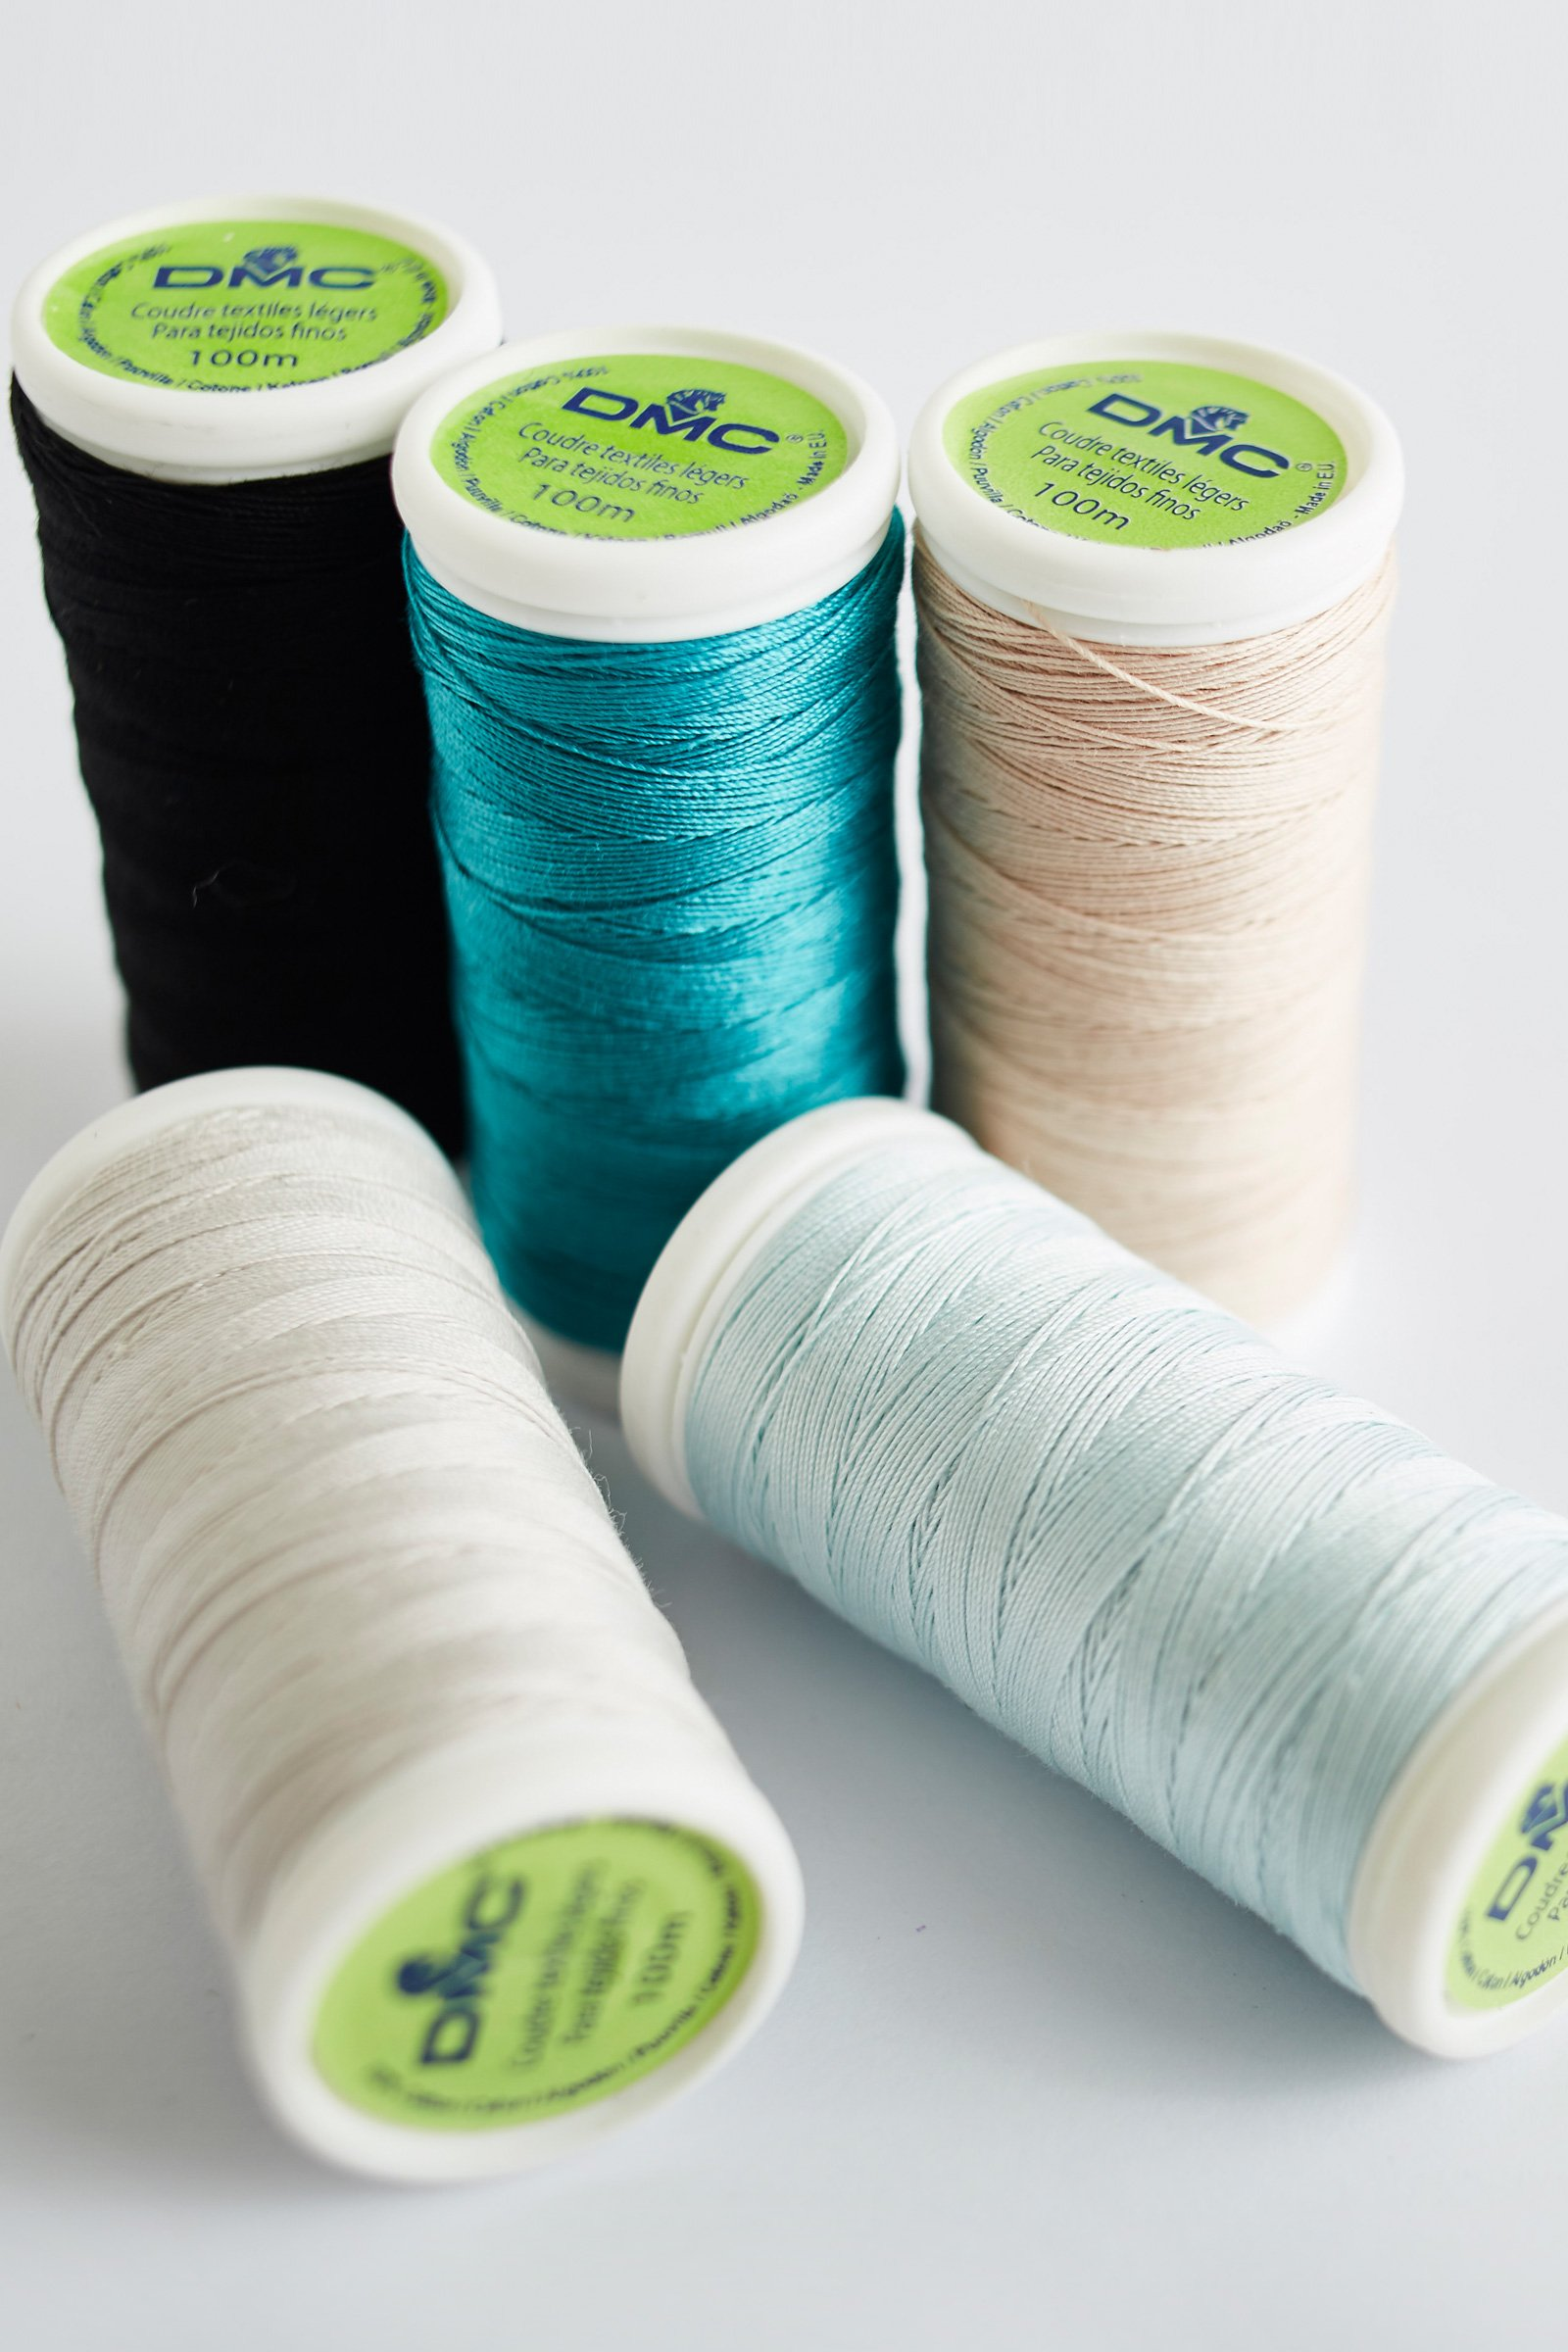 Cotton sewing thread 100m